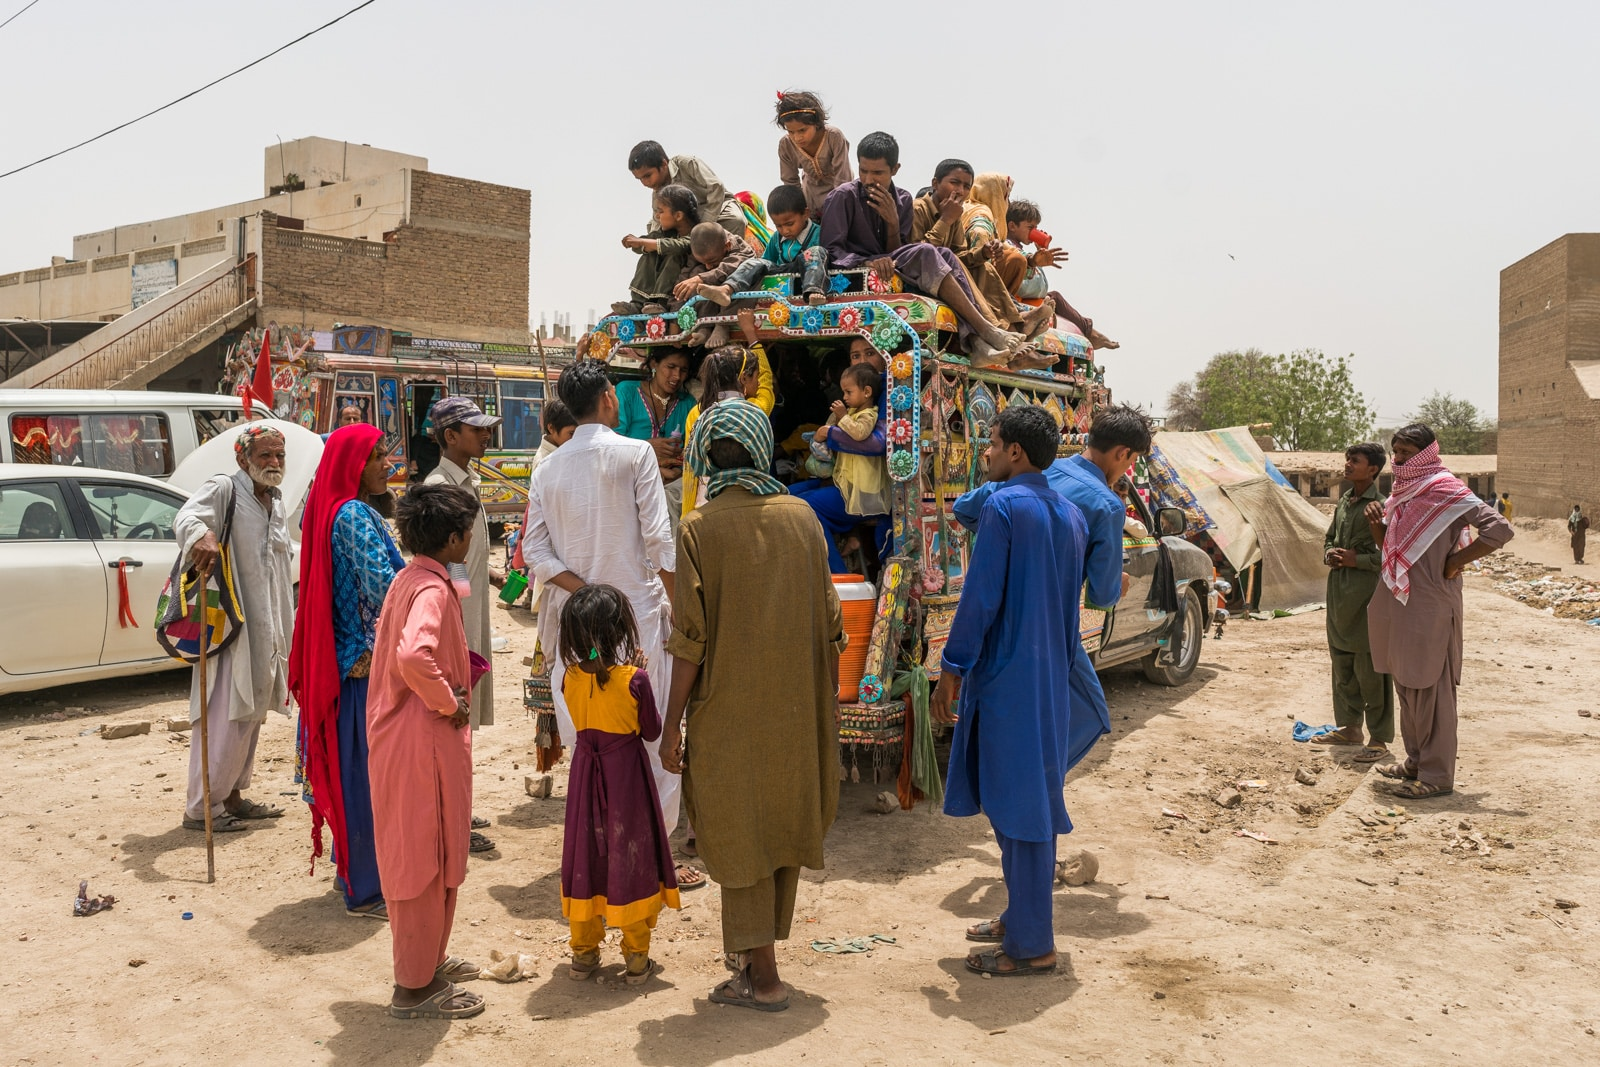 The Urs of Lal Shahbaz Qalandar in Sehwan, Pakistan - Family squishing onto a bus - Lost With Purpose travel blog